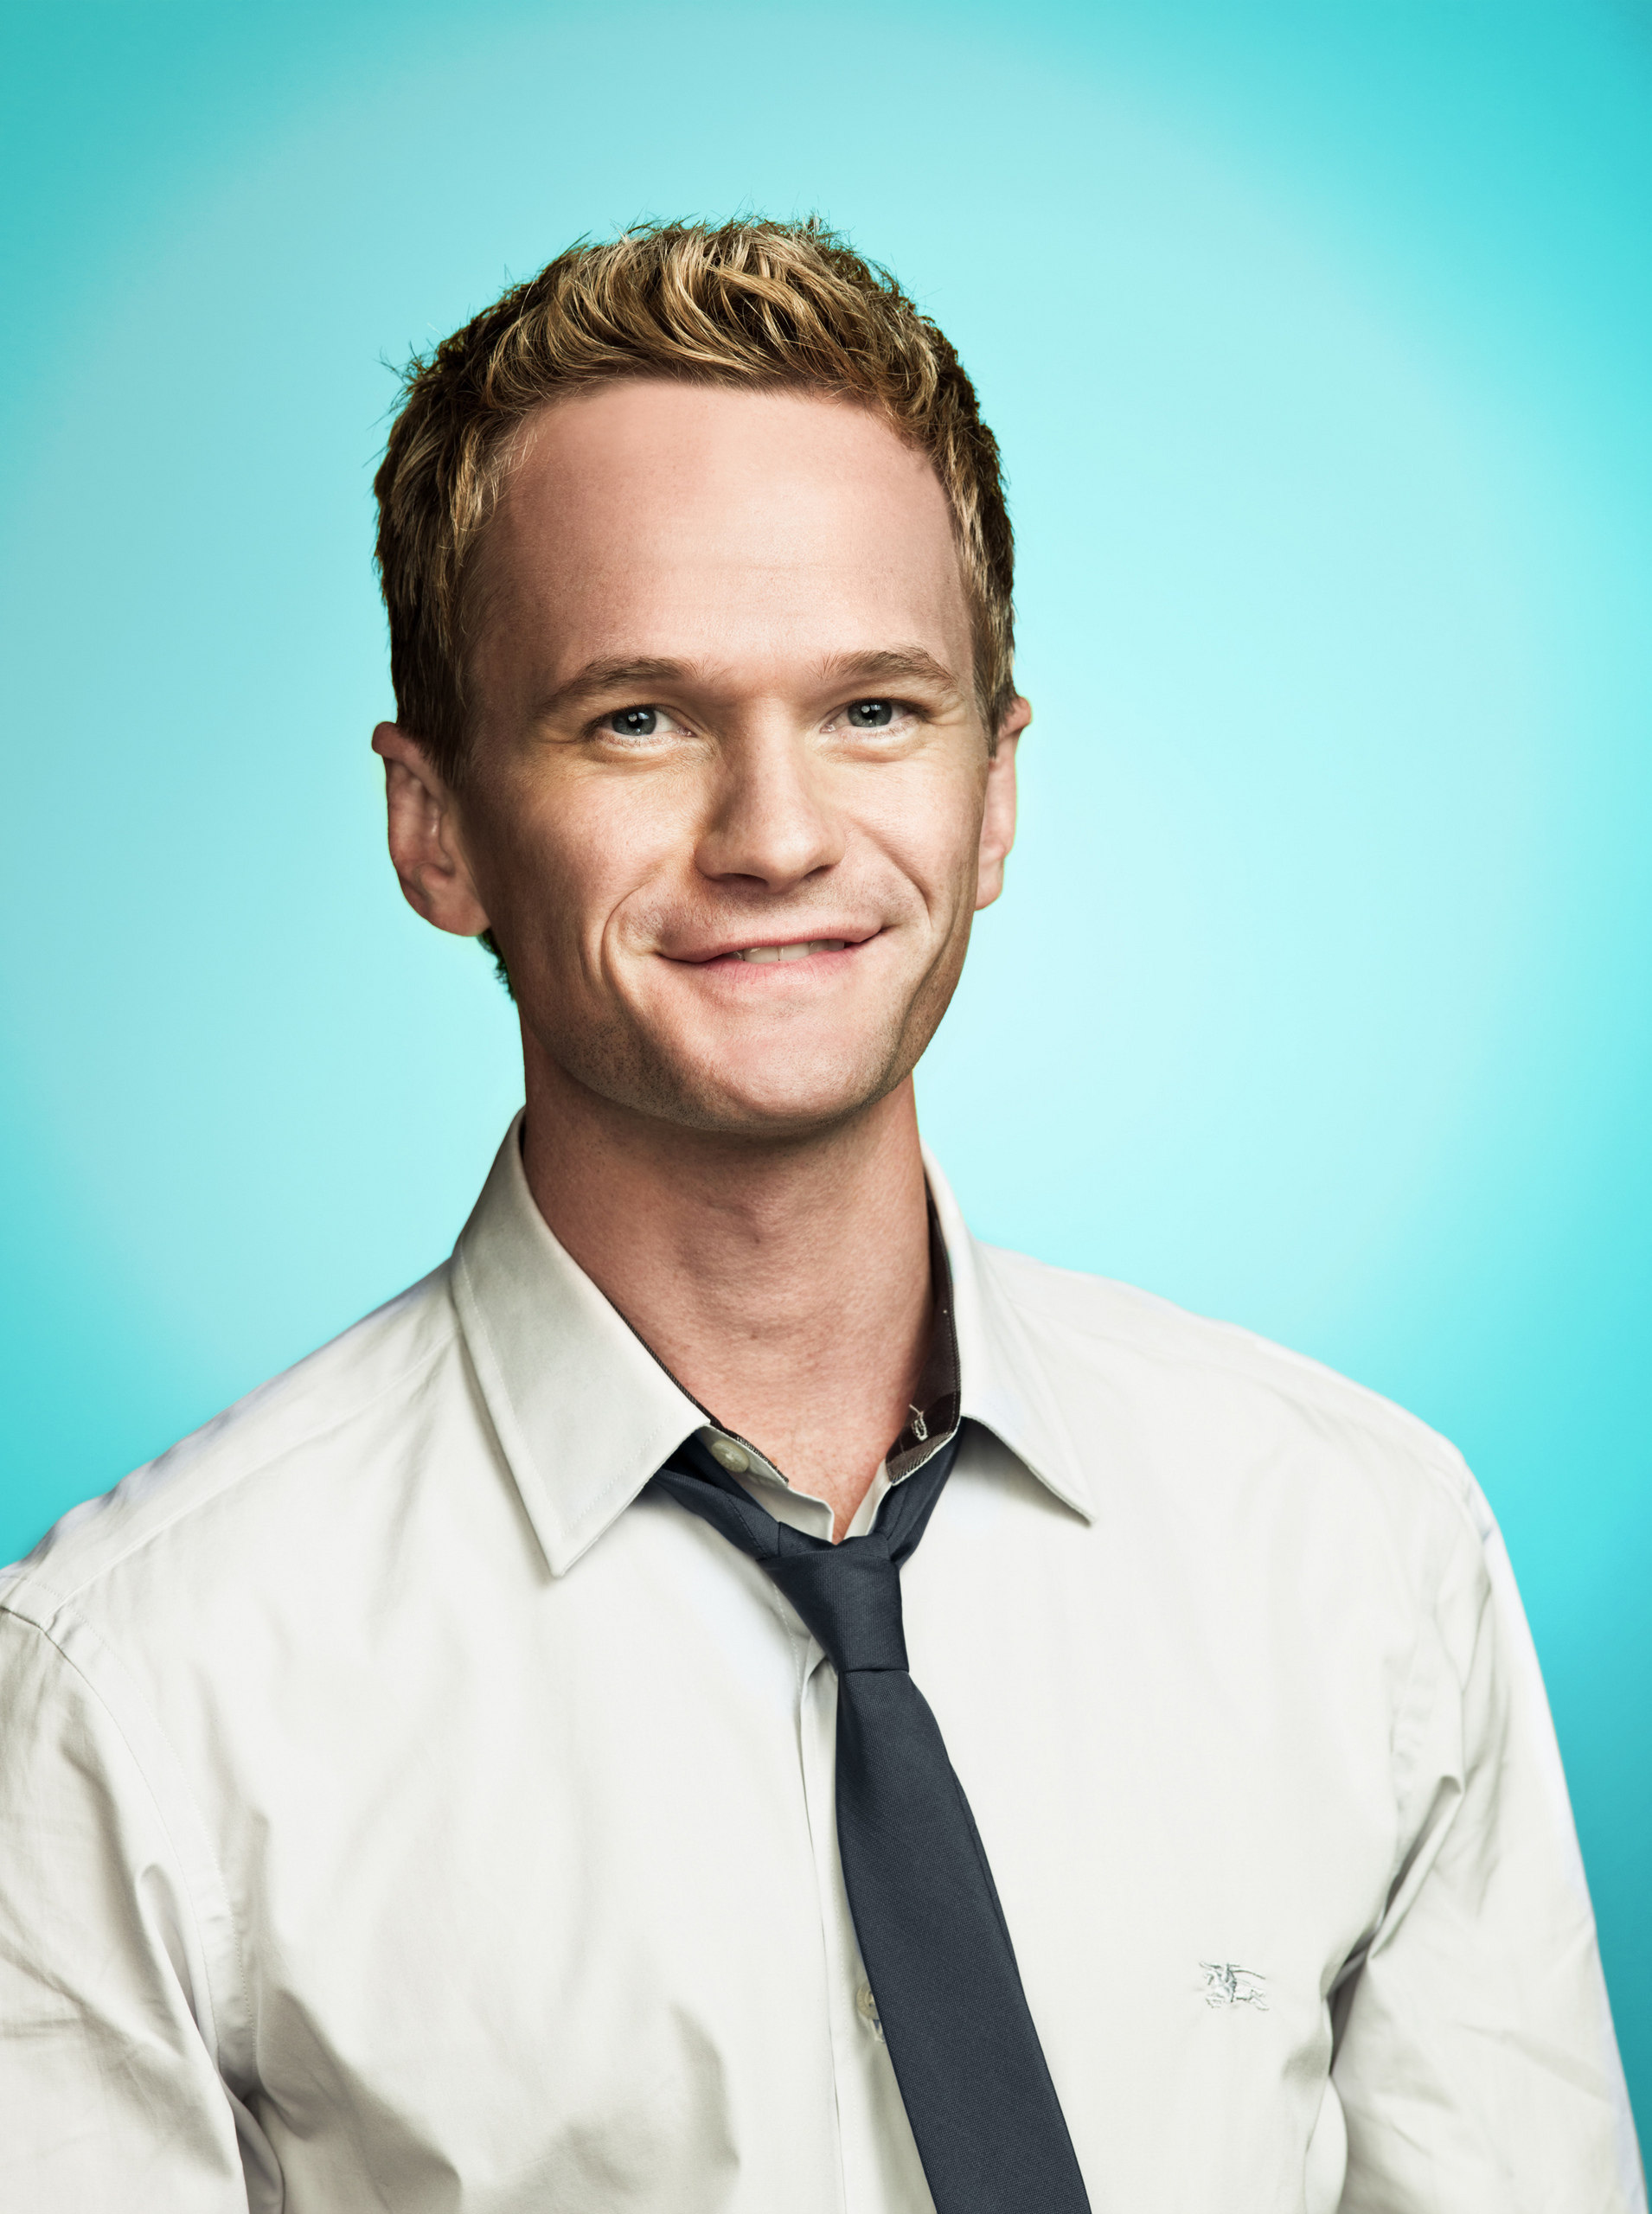 barney stinson dating tips This feature is not available right now please try again later.